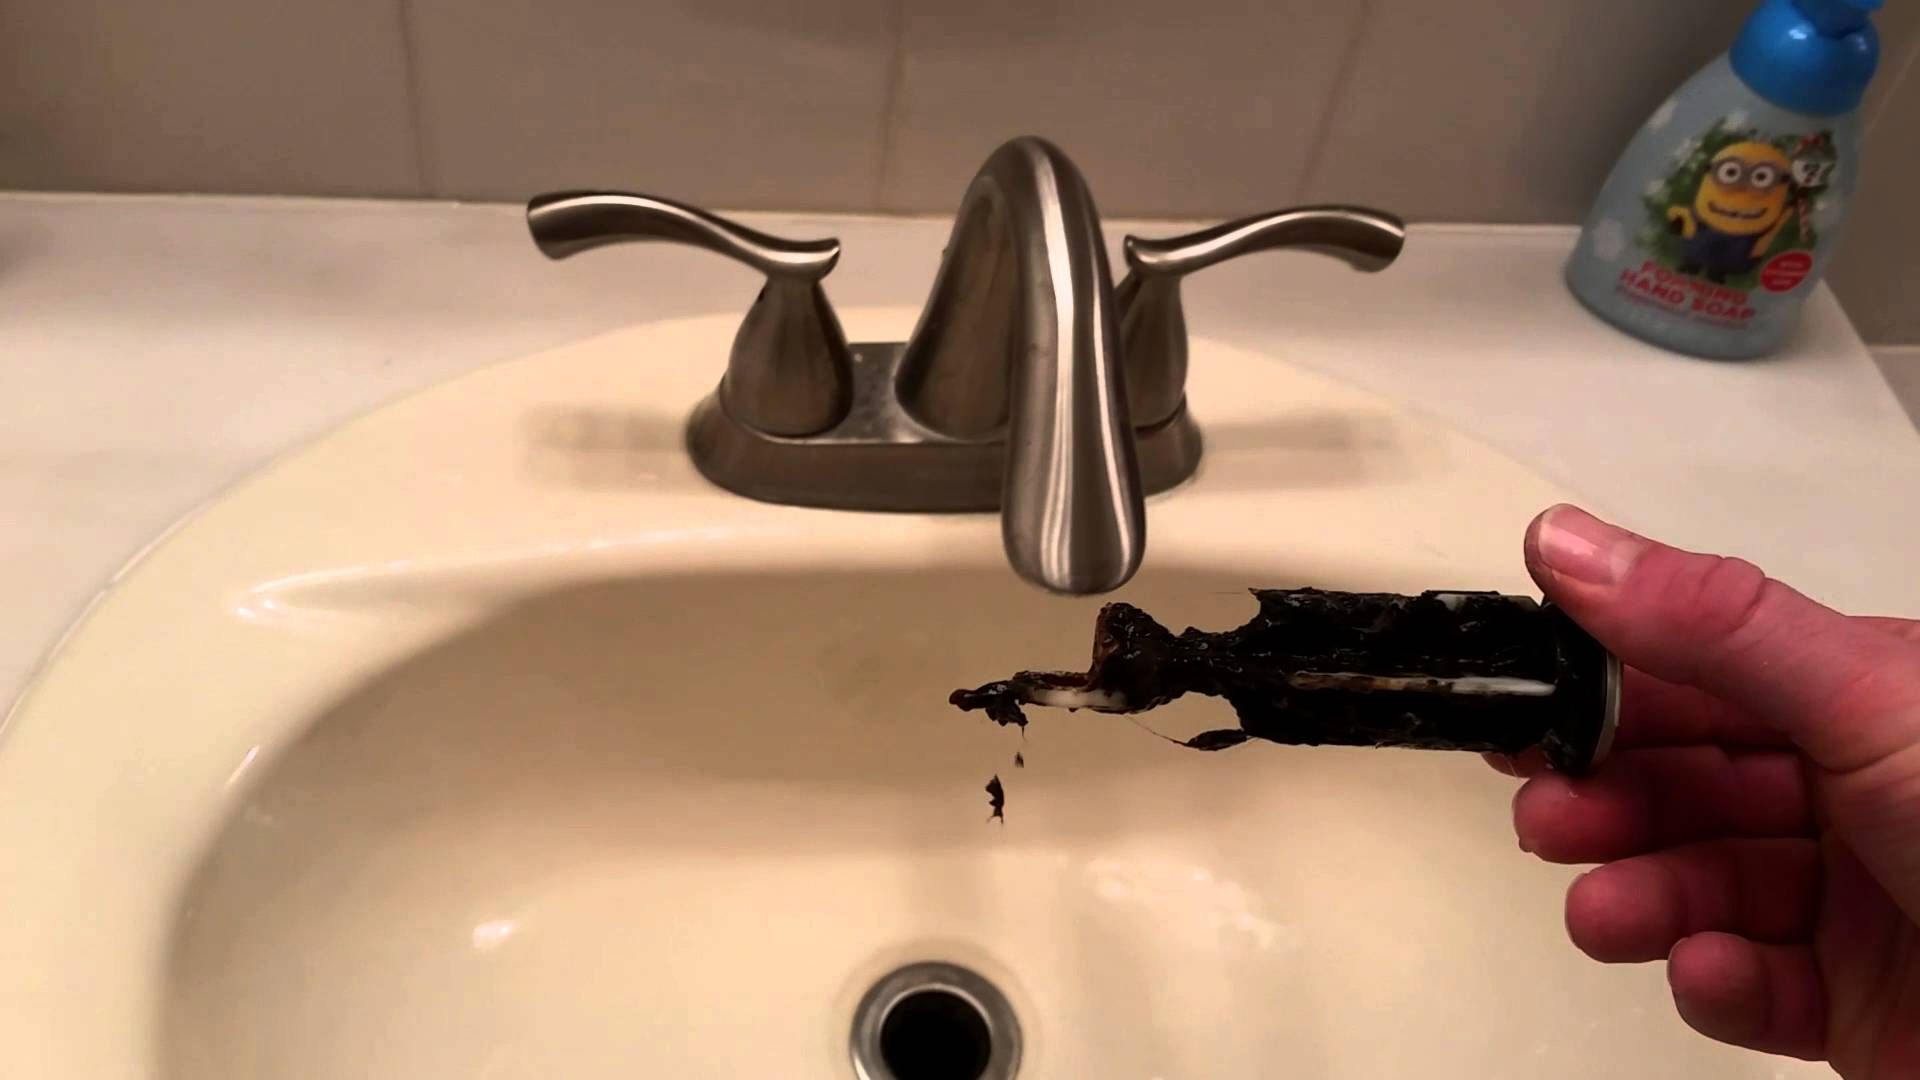 How To Clean A Clogged Bathroom Sink